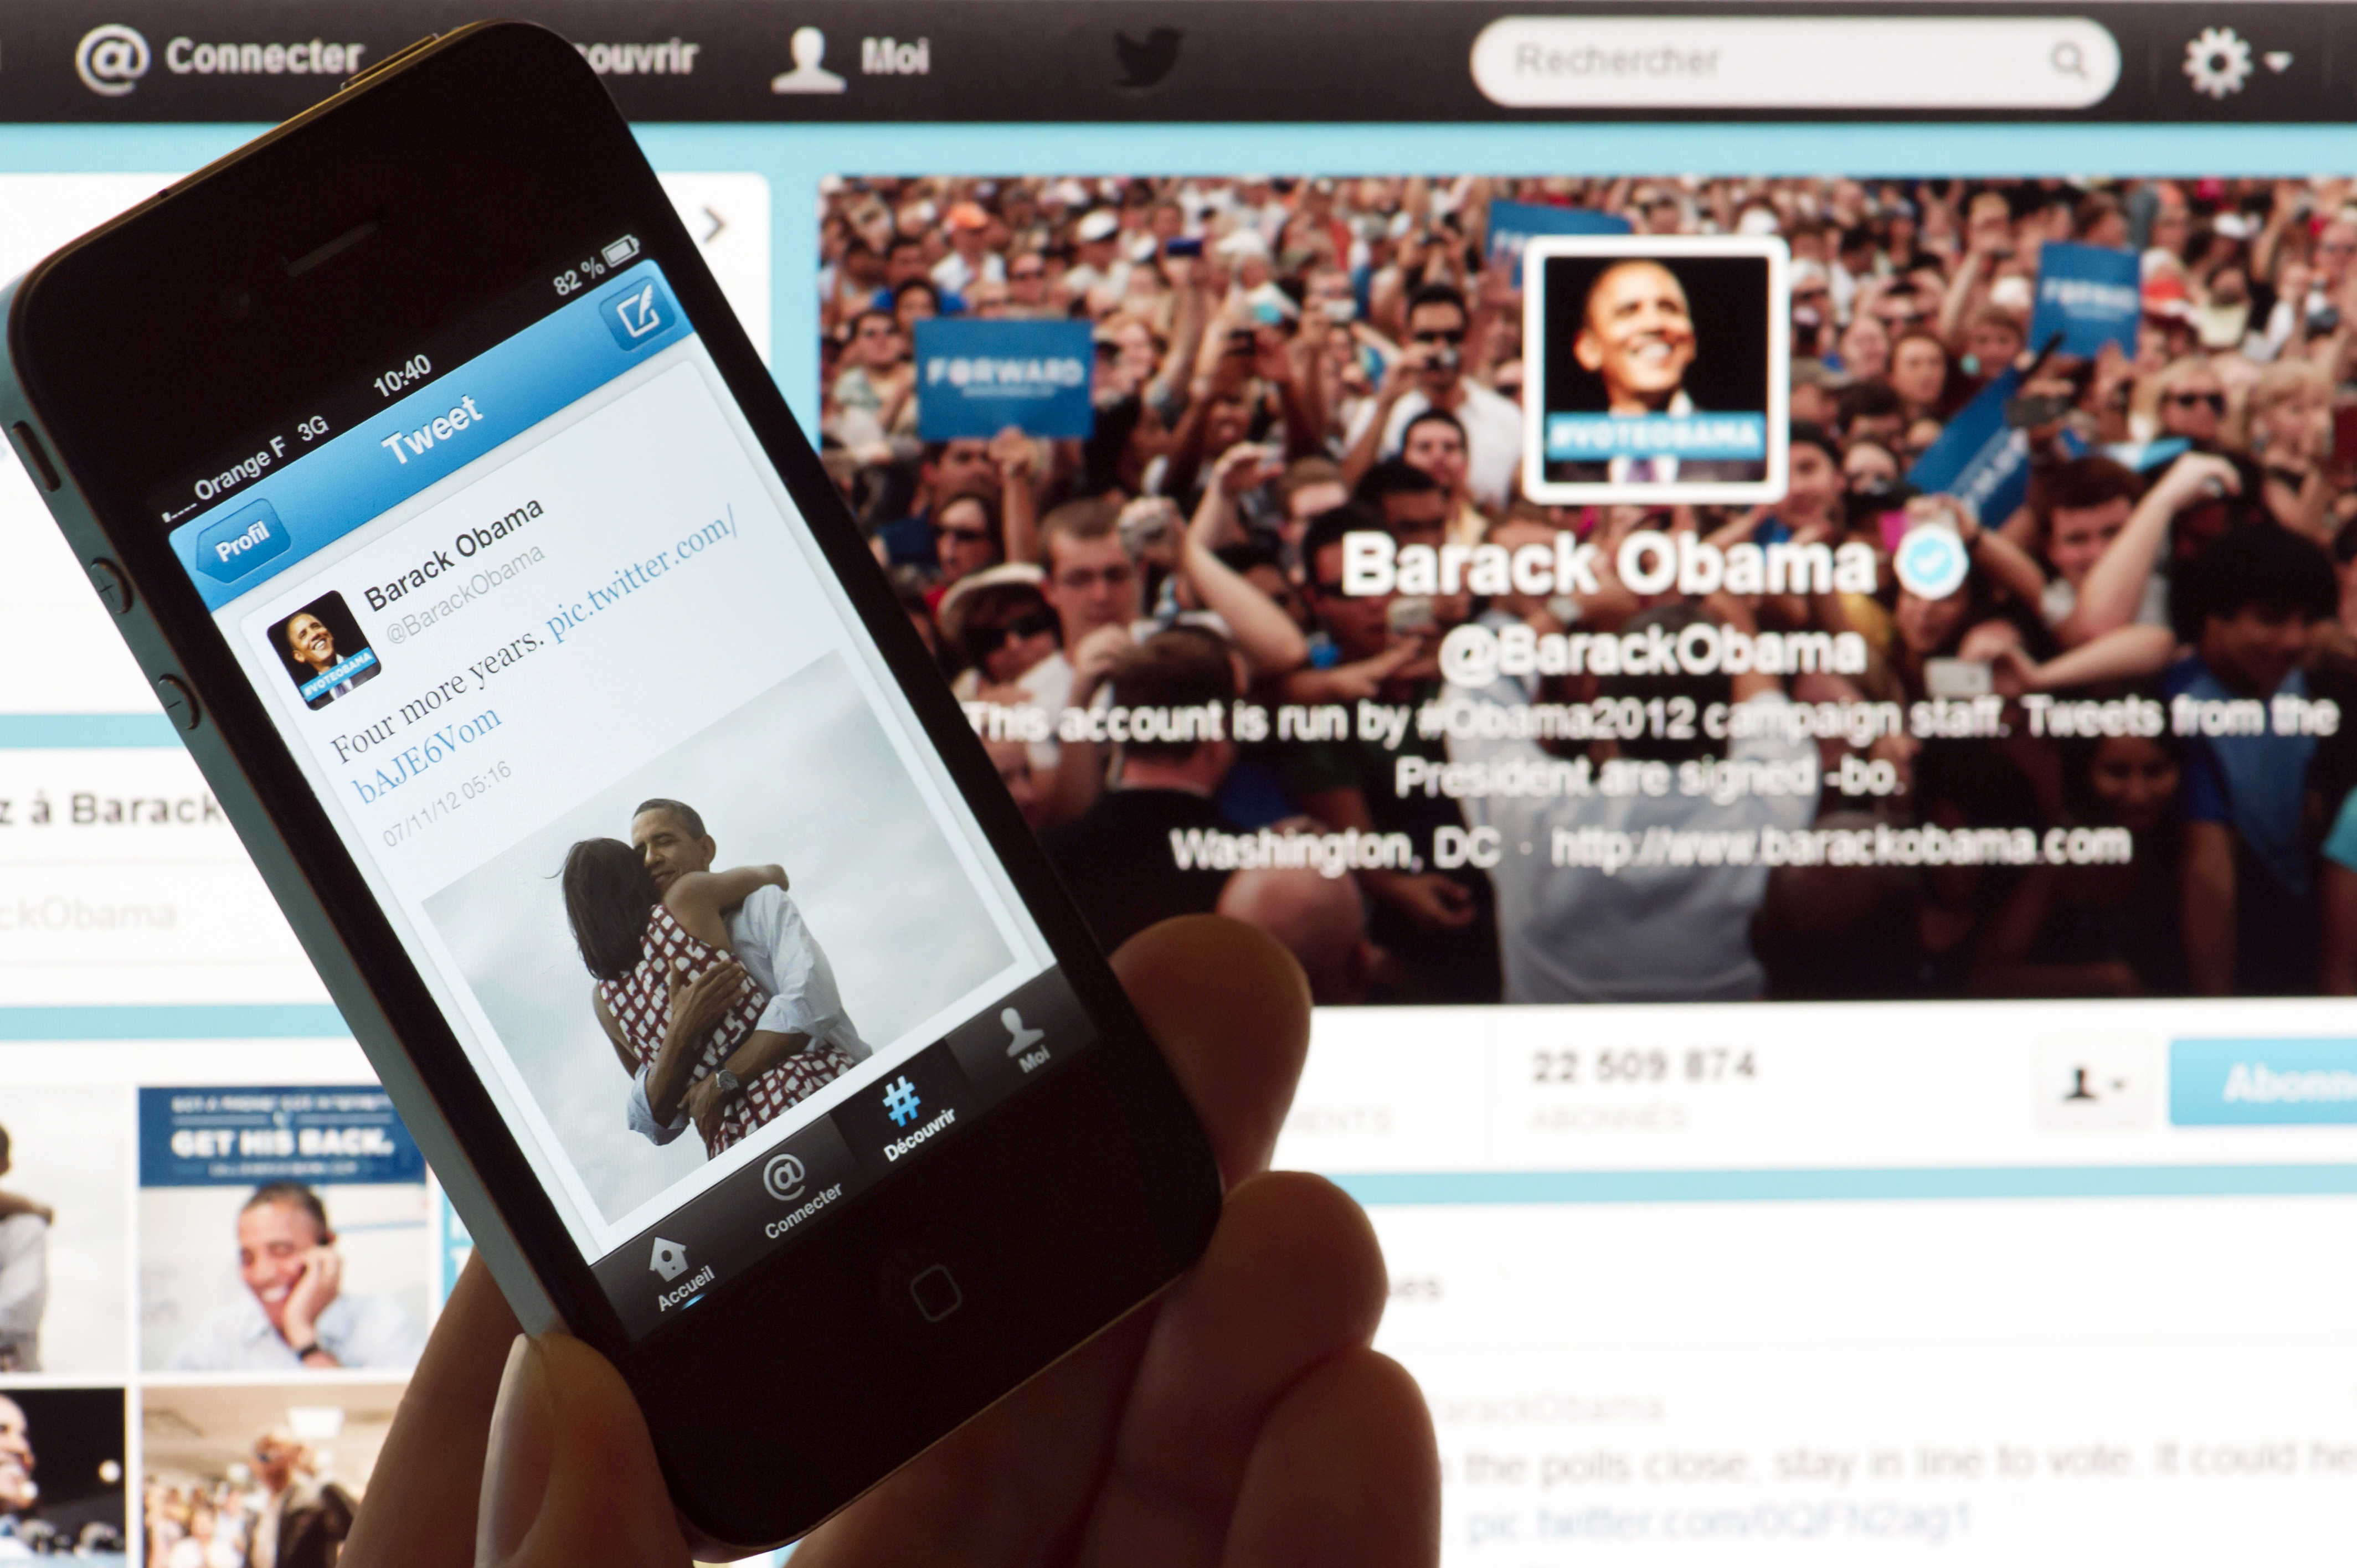 Barack Obama's tweets on Nov. 7, 2012 after his re-election as US president.